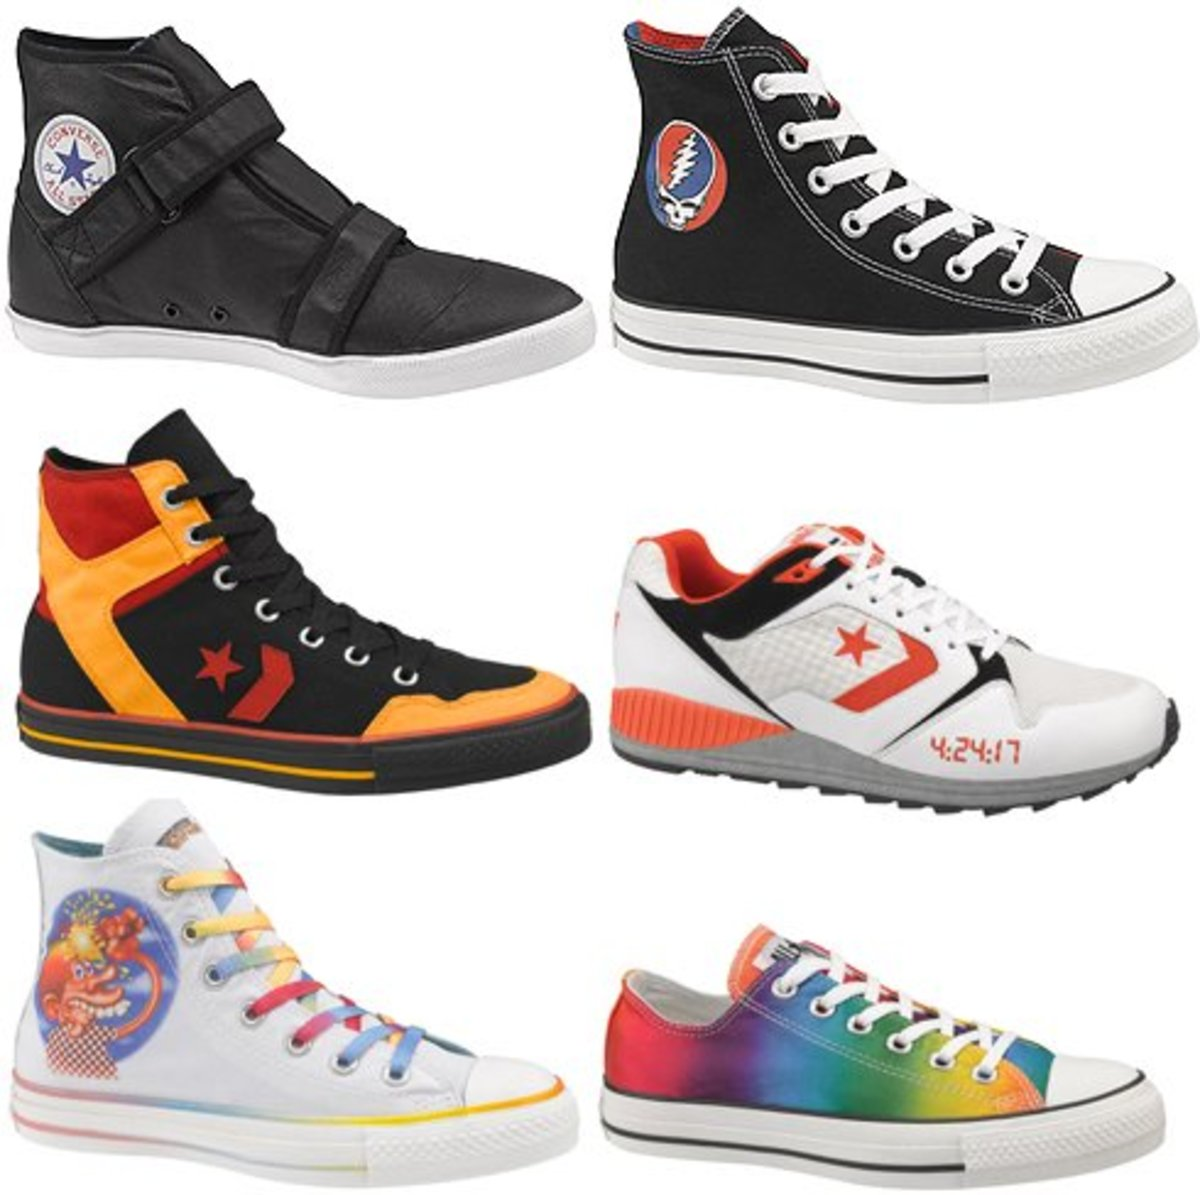 Converse - Fall 2008 Collection